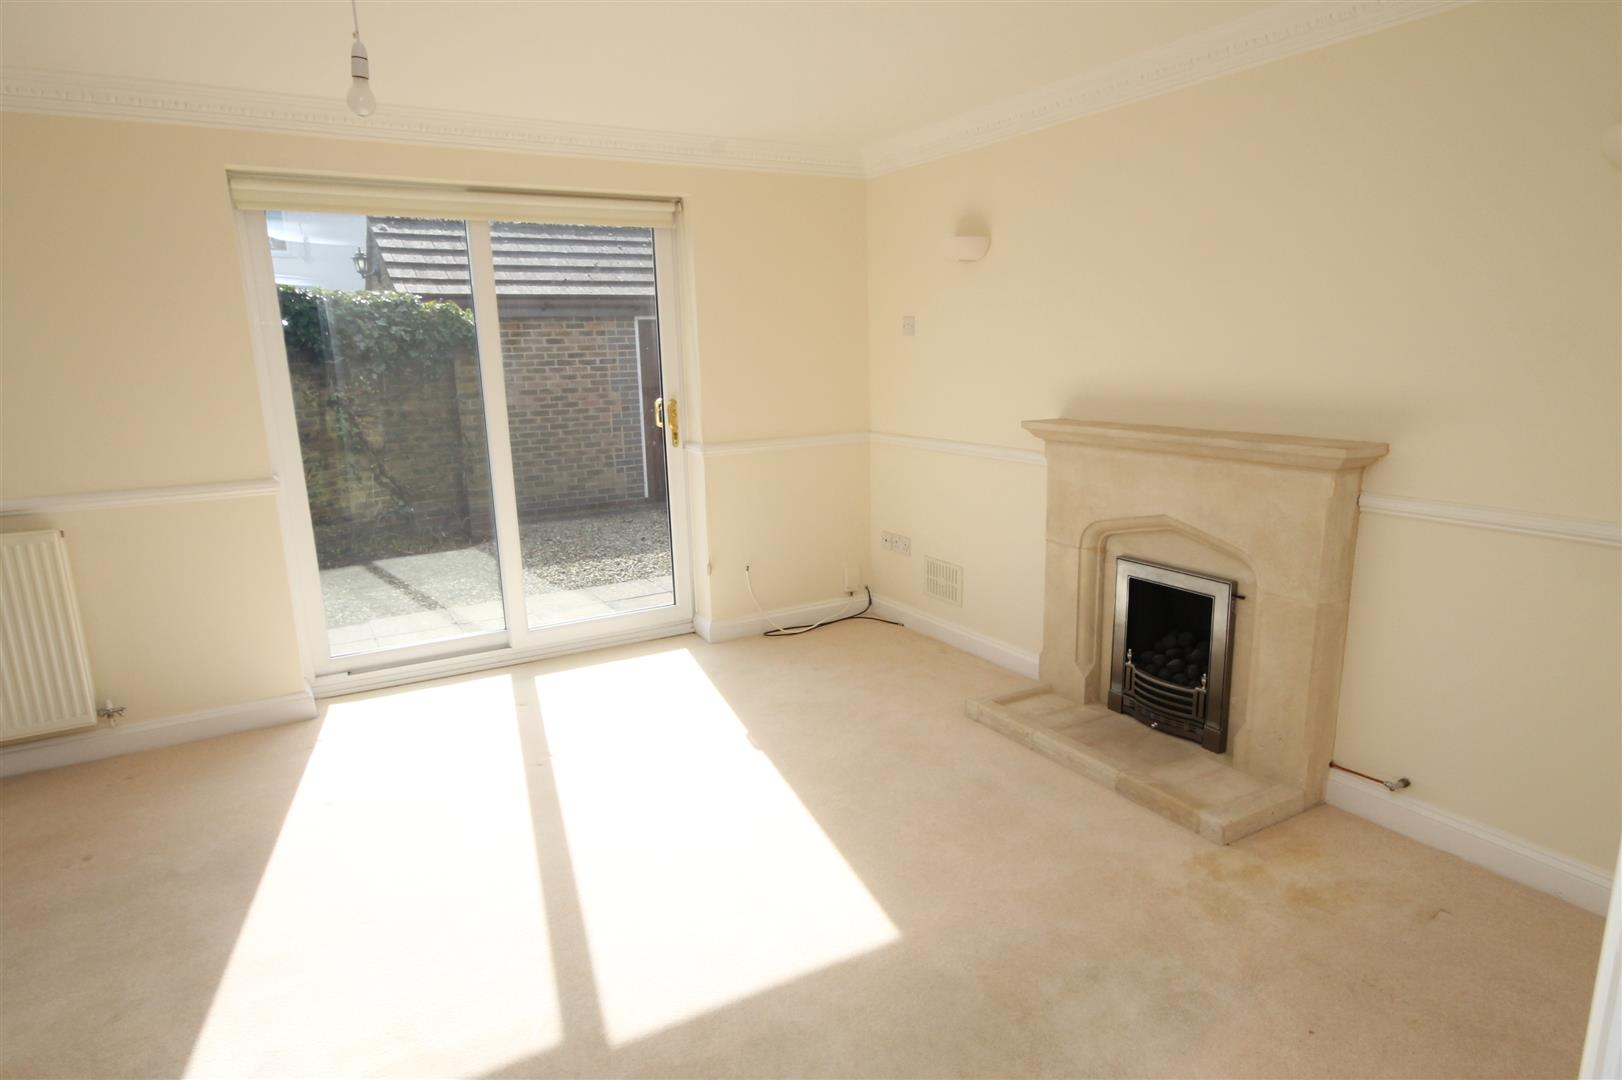 4 bed house to rent in Reedley Road, Bristol 1